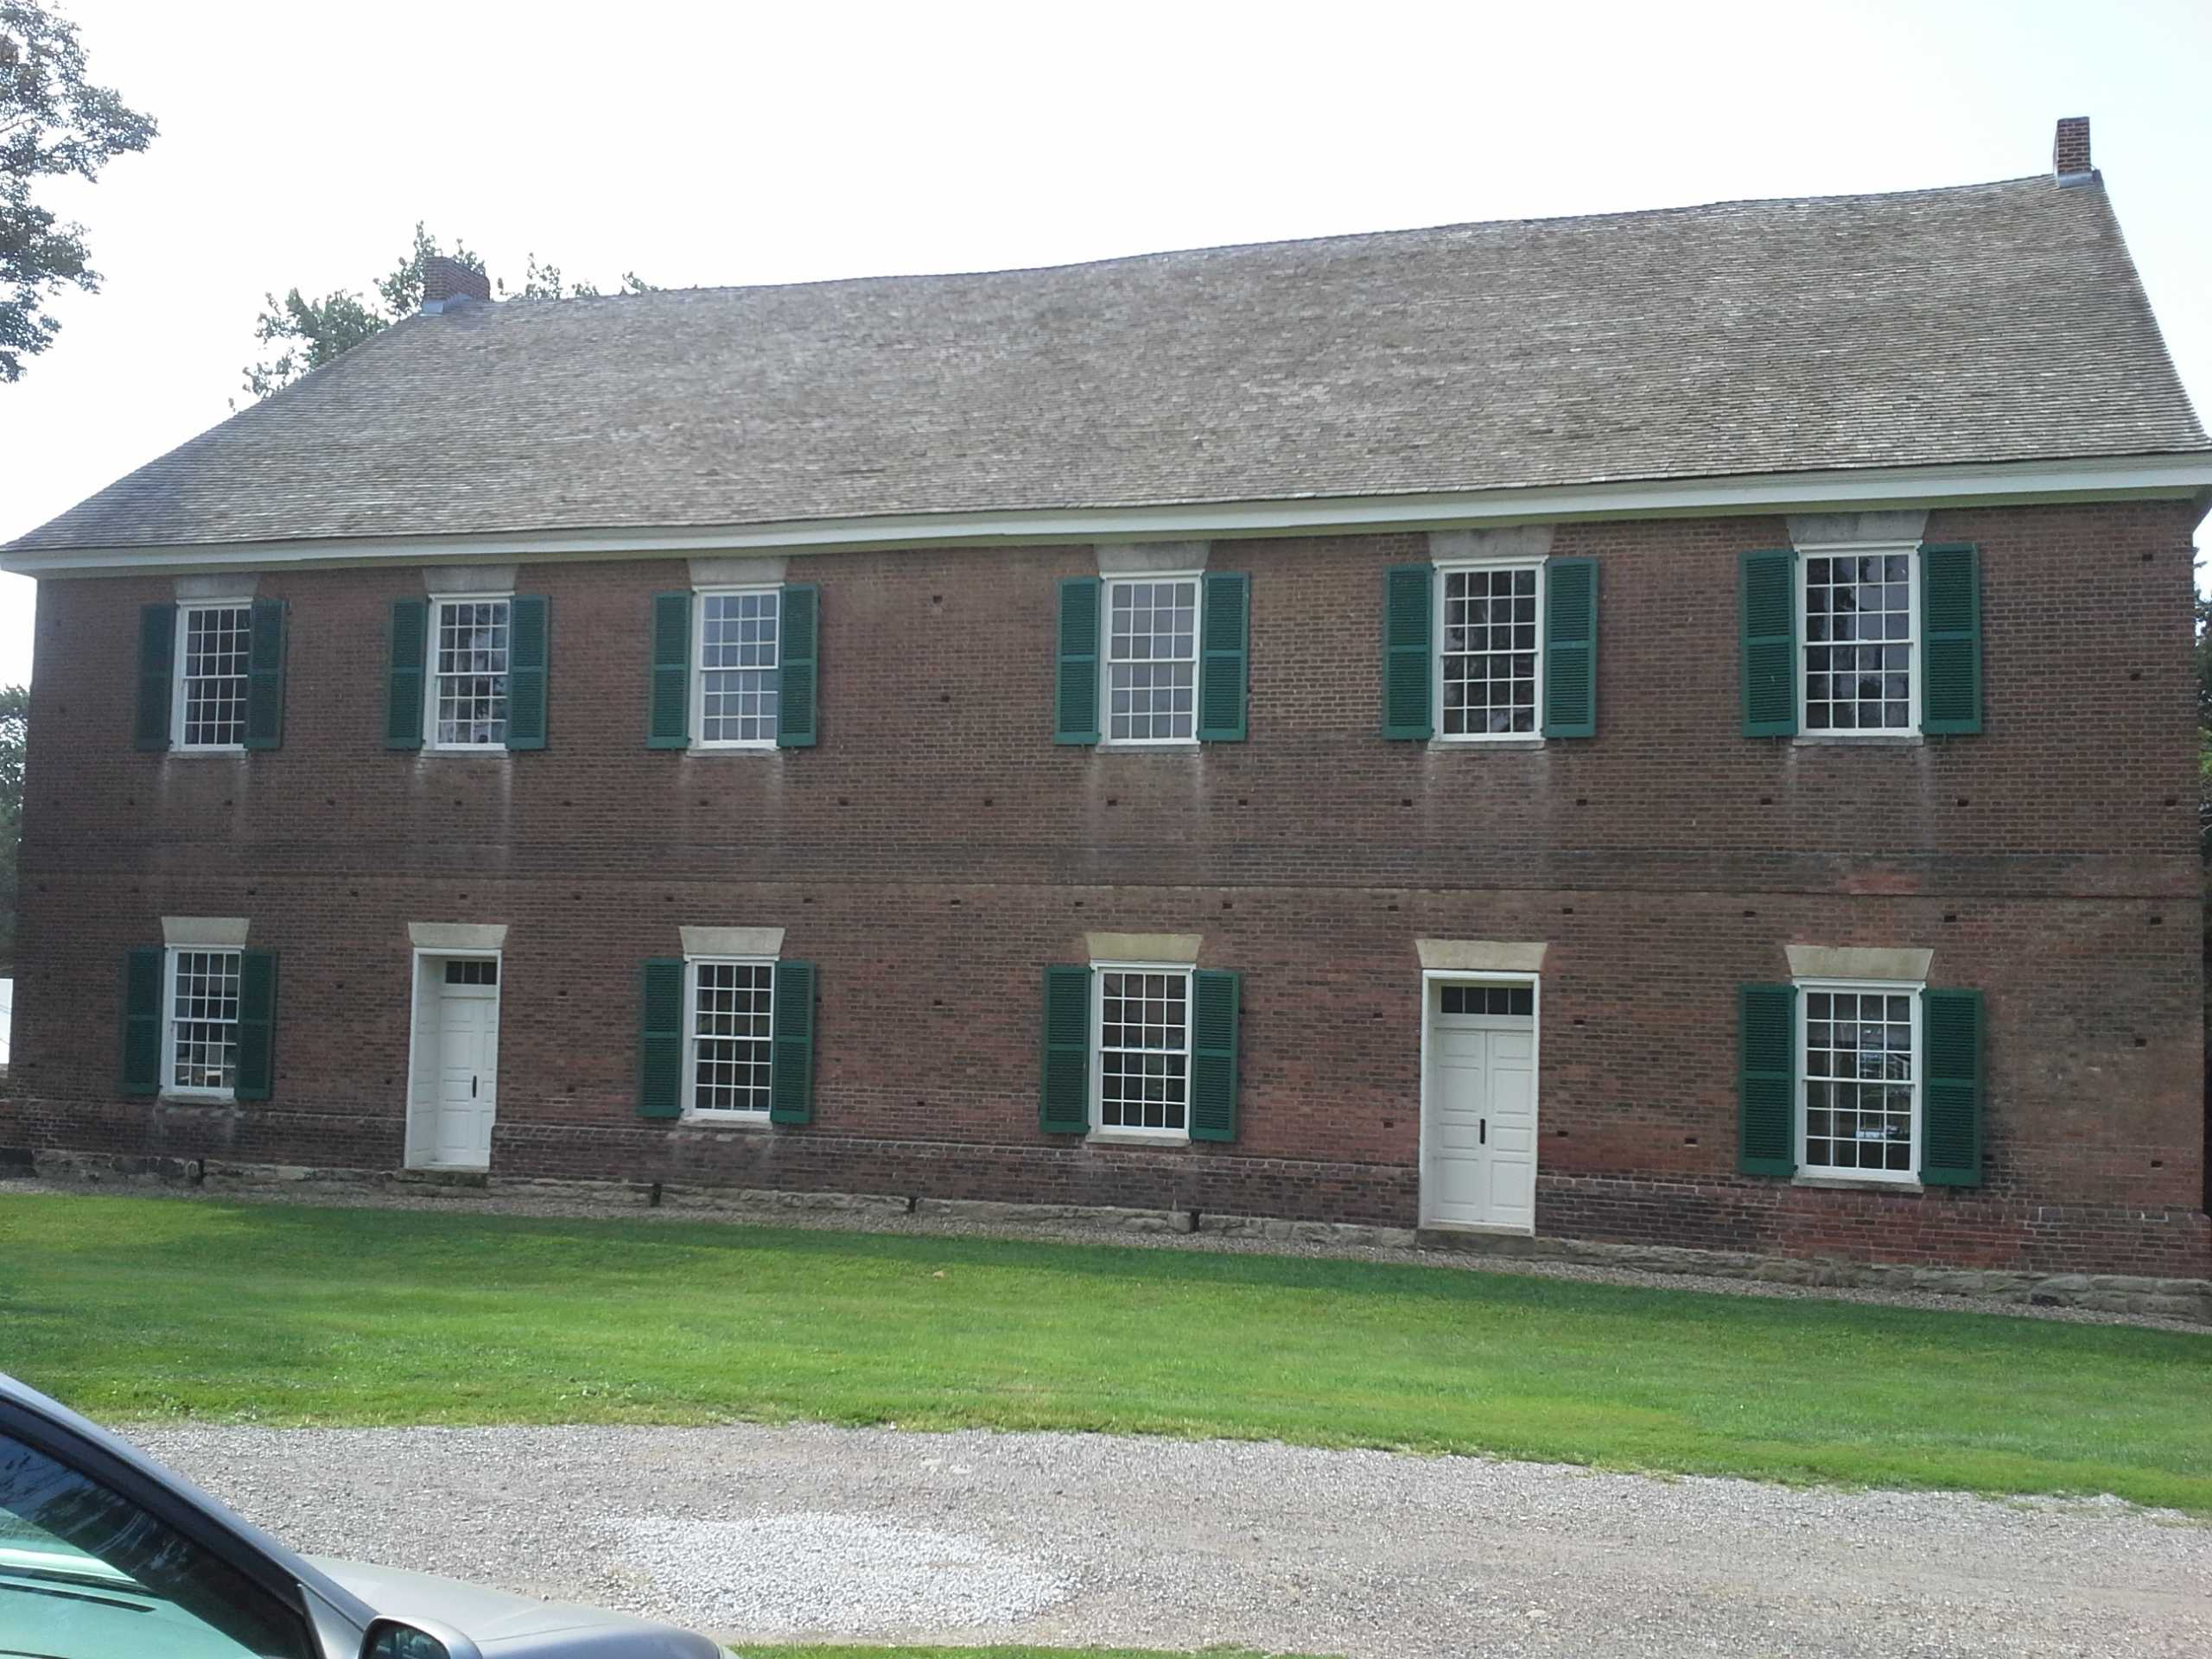 Village of Mt. Pleasant & Quaker Meeting House ... Quaker Meeting House